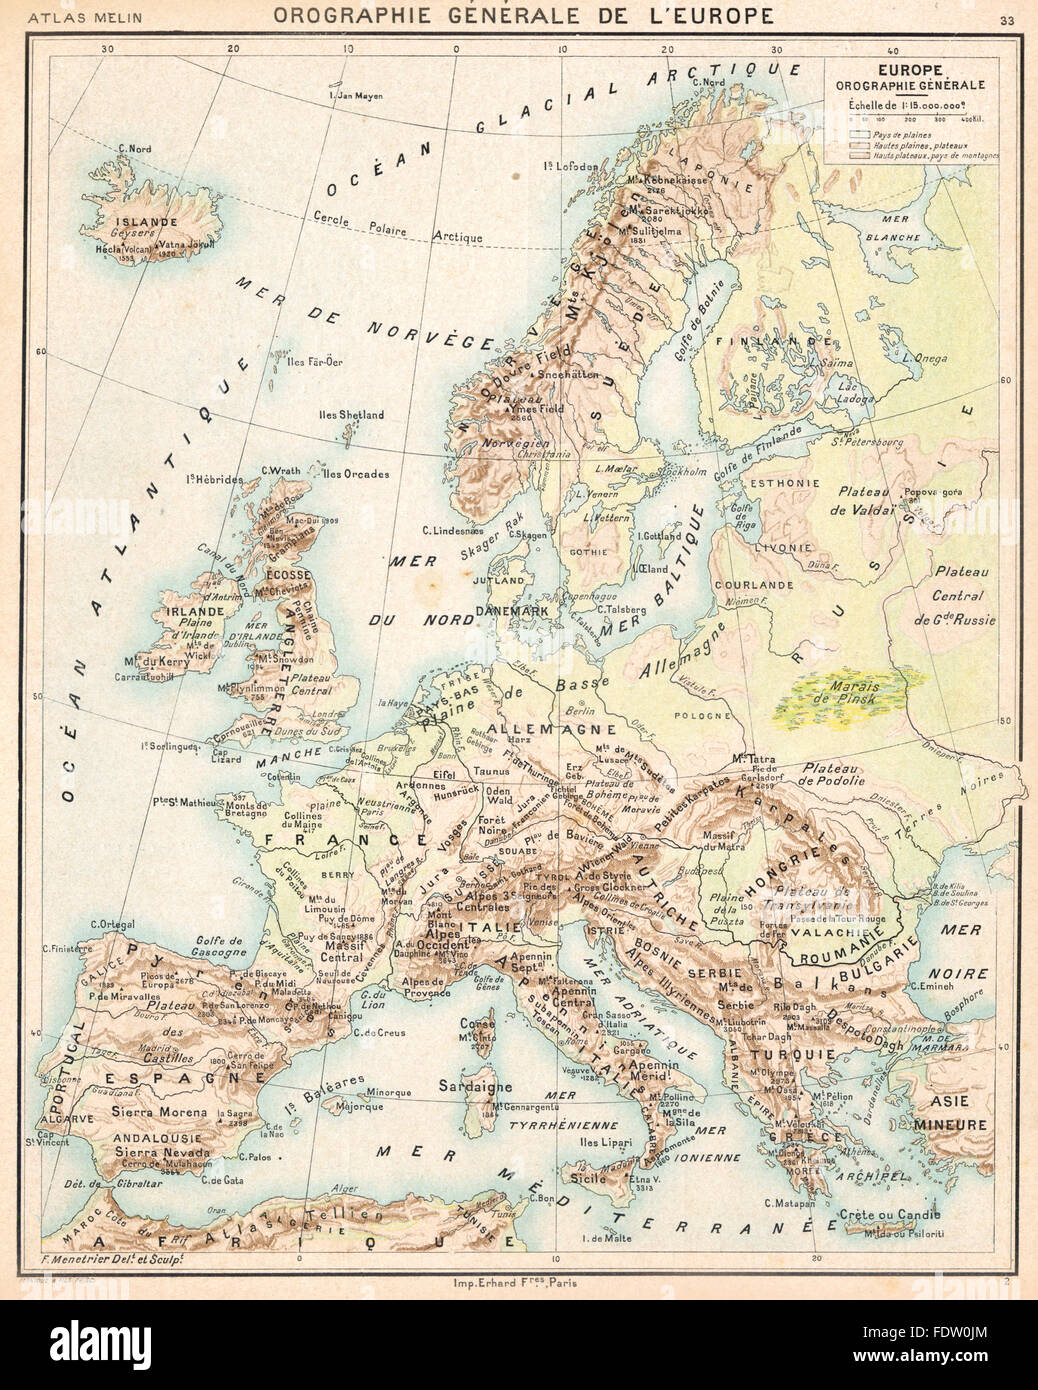 EUROPE: Orographie Générale De Lu0027Europe, 1900 Antique Map